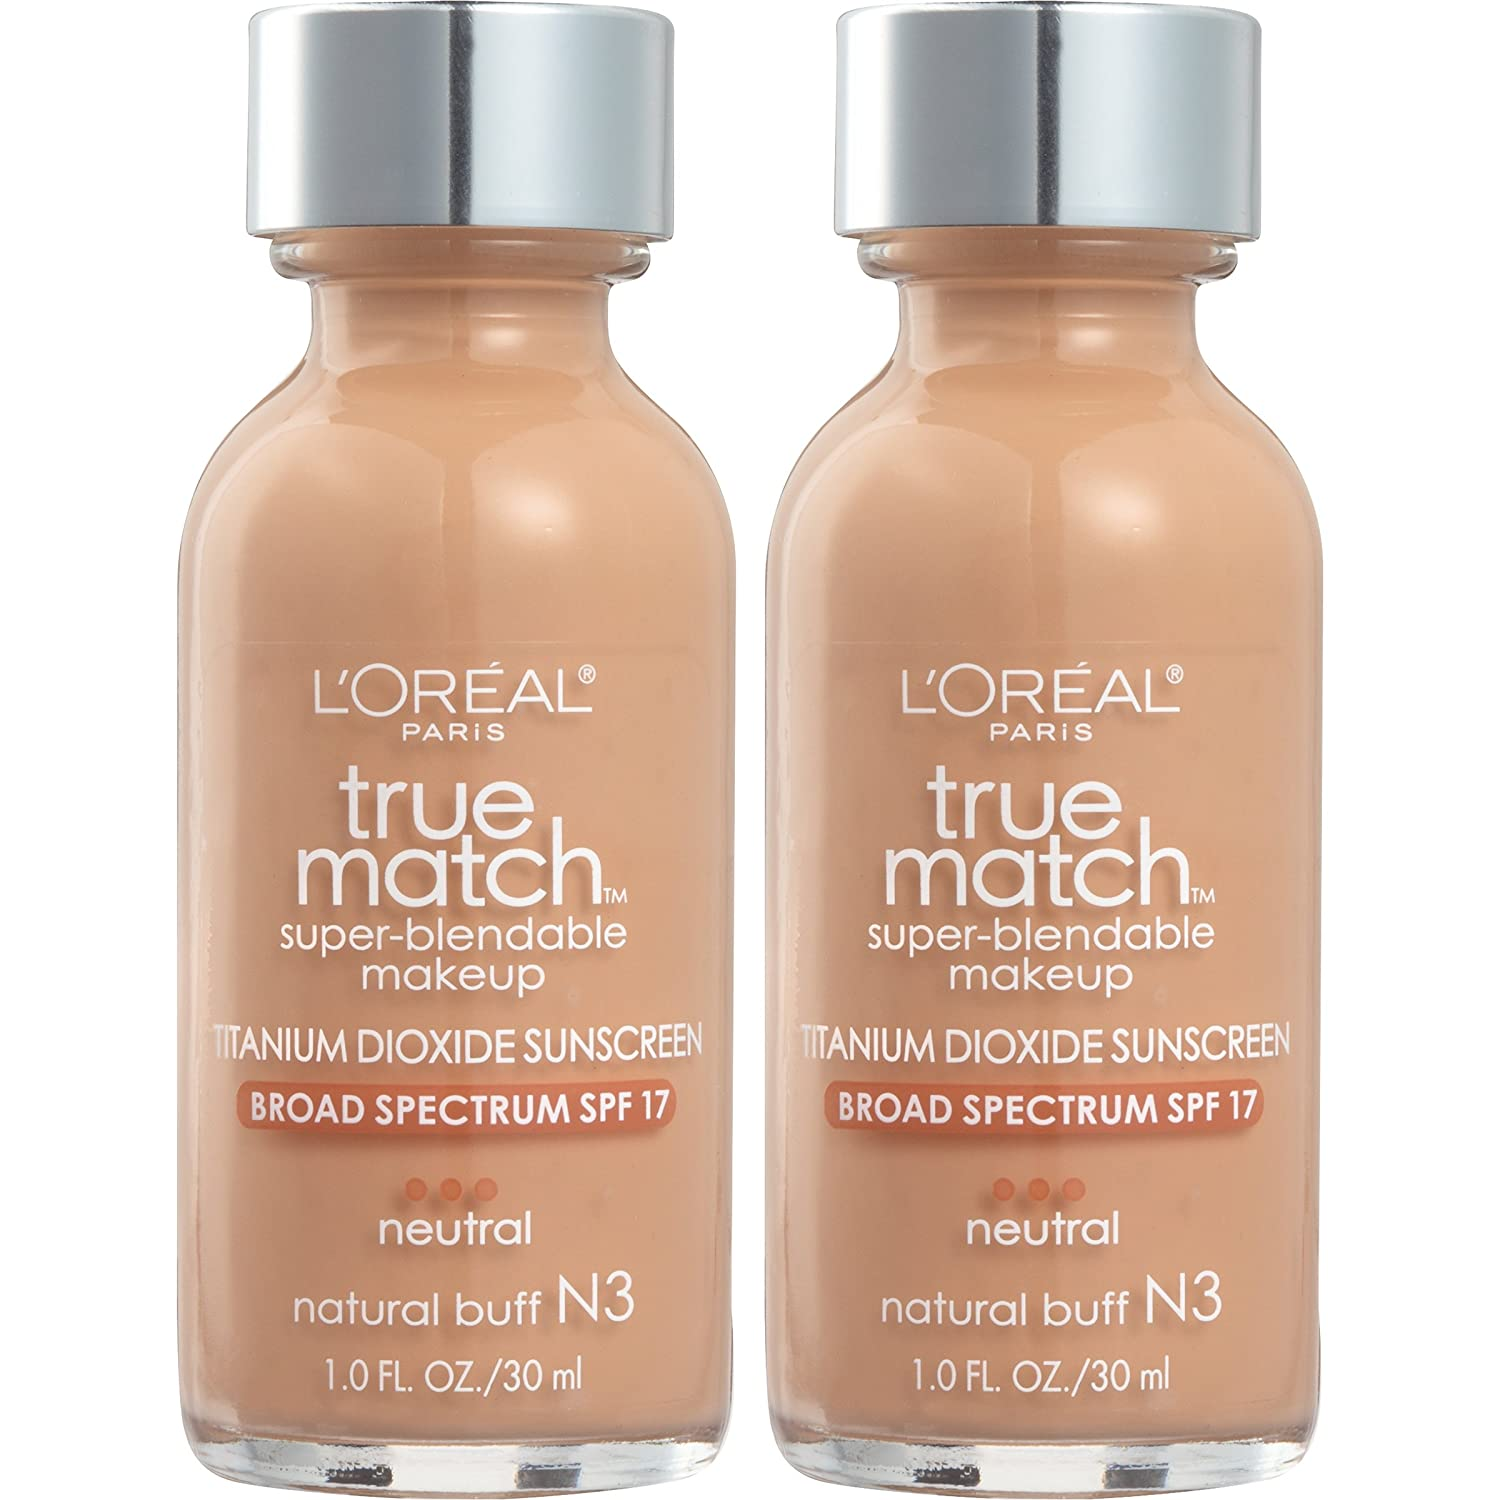 L'Oreal Paris Cosmetics True Match Super-Blendable Foundation Makeup, Natural Buff N3, 2 Count